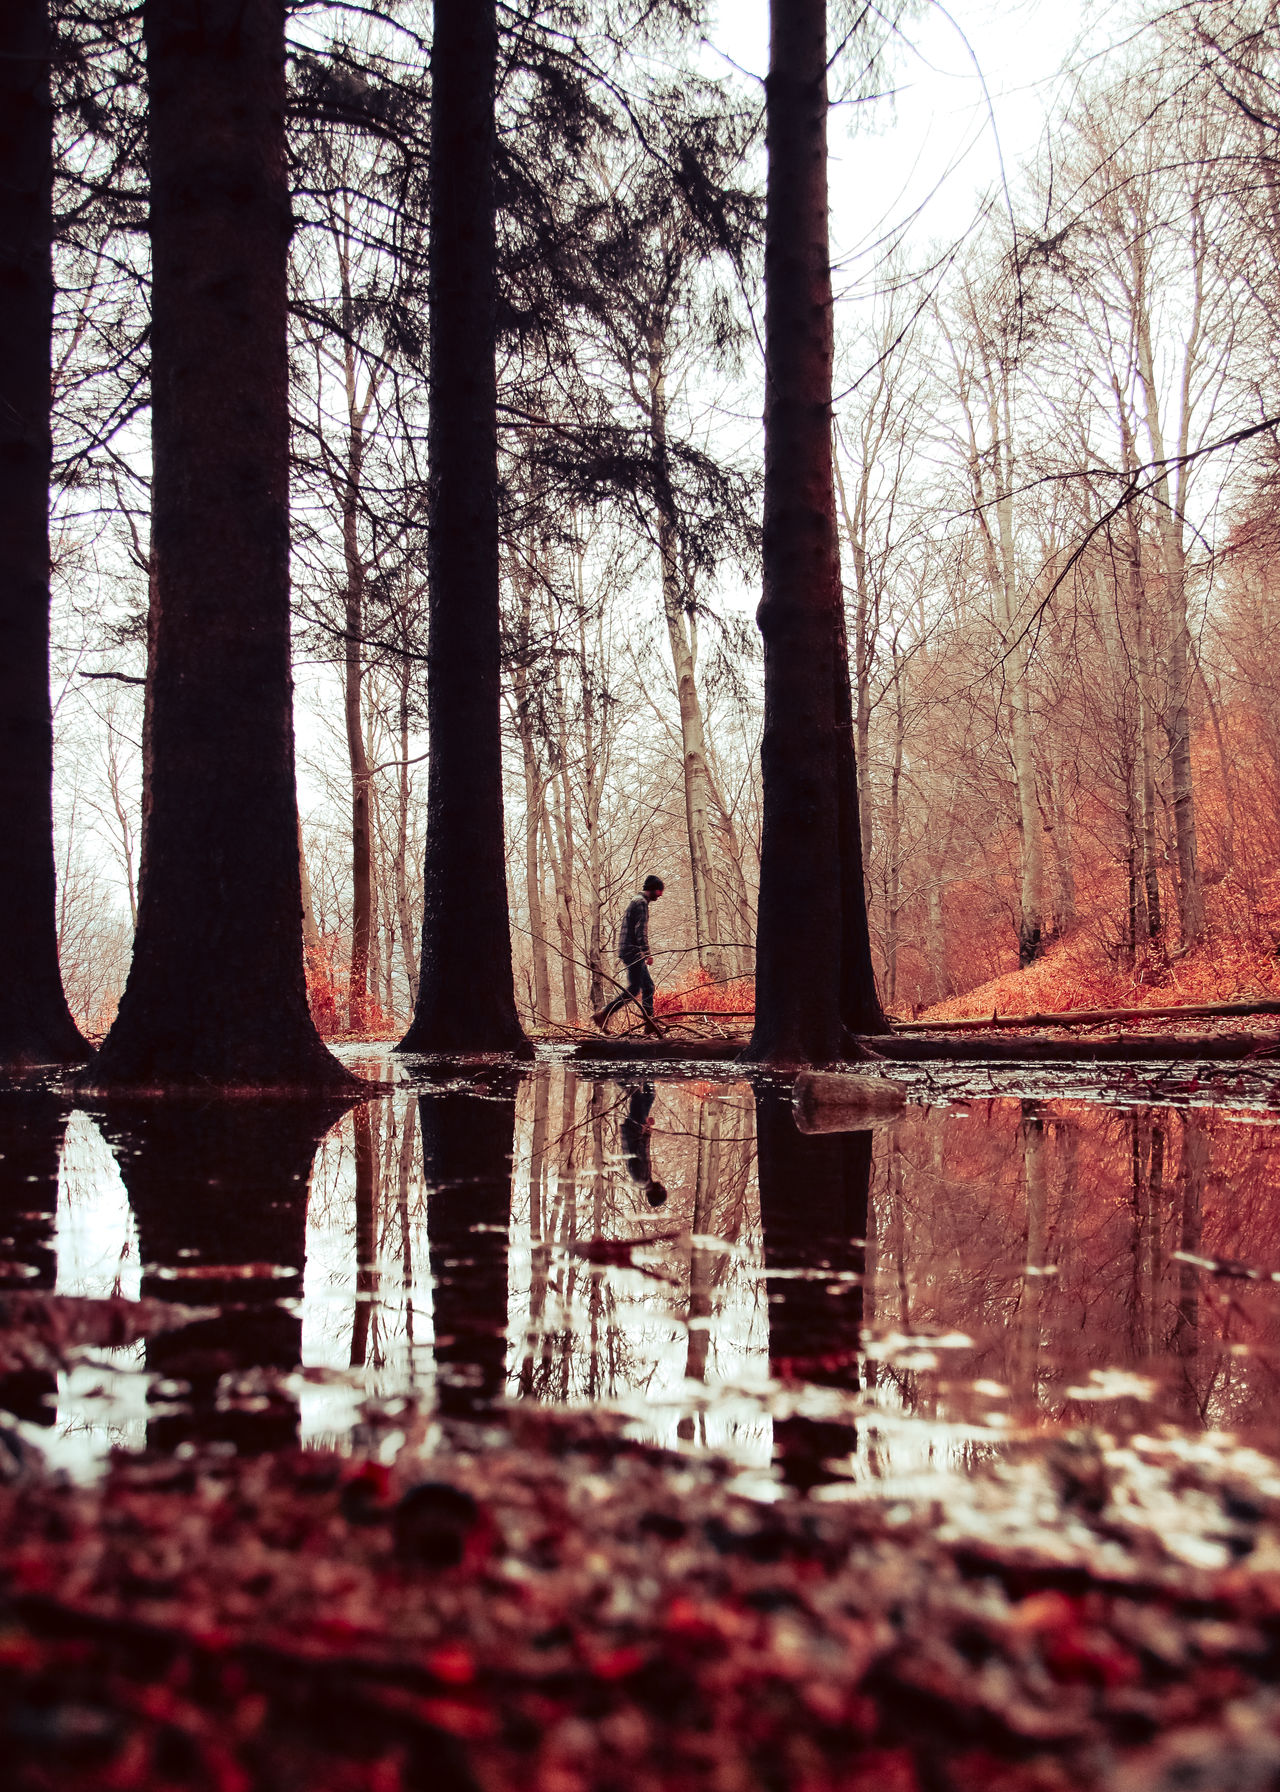 Autumn Bare Tree Beauty In Nature Creepy Darkness EyEmNewHere Forest Into The Woods Lake Leaves One Man Only One Person Outdoors Red Reflection Scenics The Great Outdoors - 2017 EyeEm Awards Tranquil Scene Tranquility Tree Tree Trunk Walking Alone... Wandering Wanderlust Wood